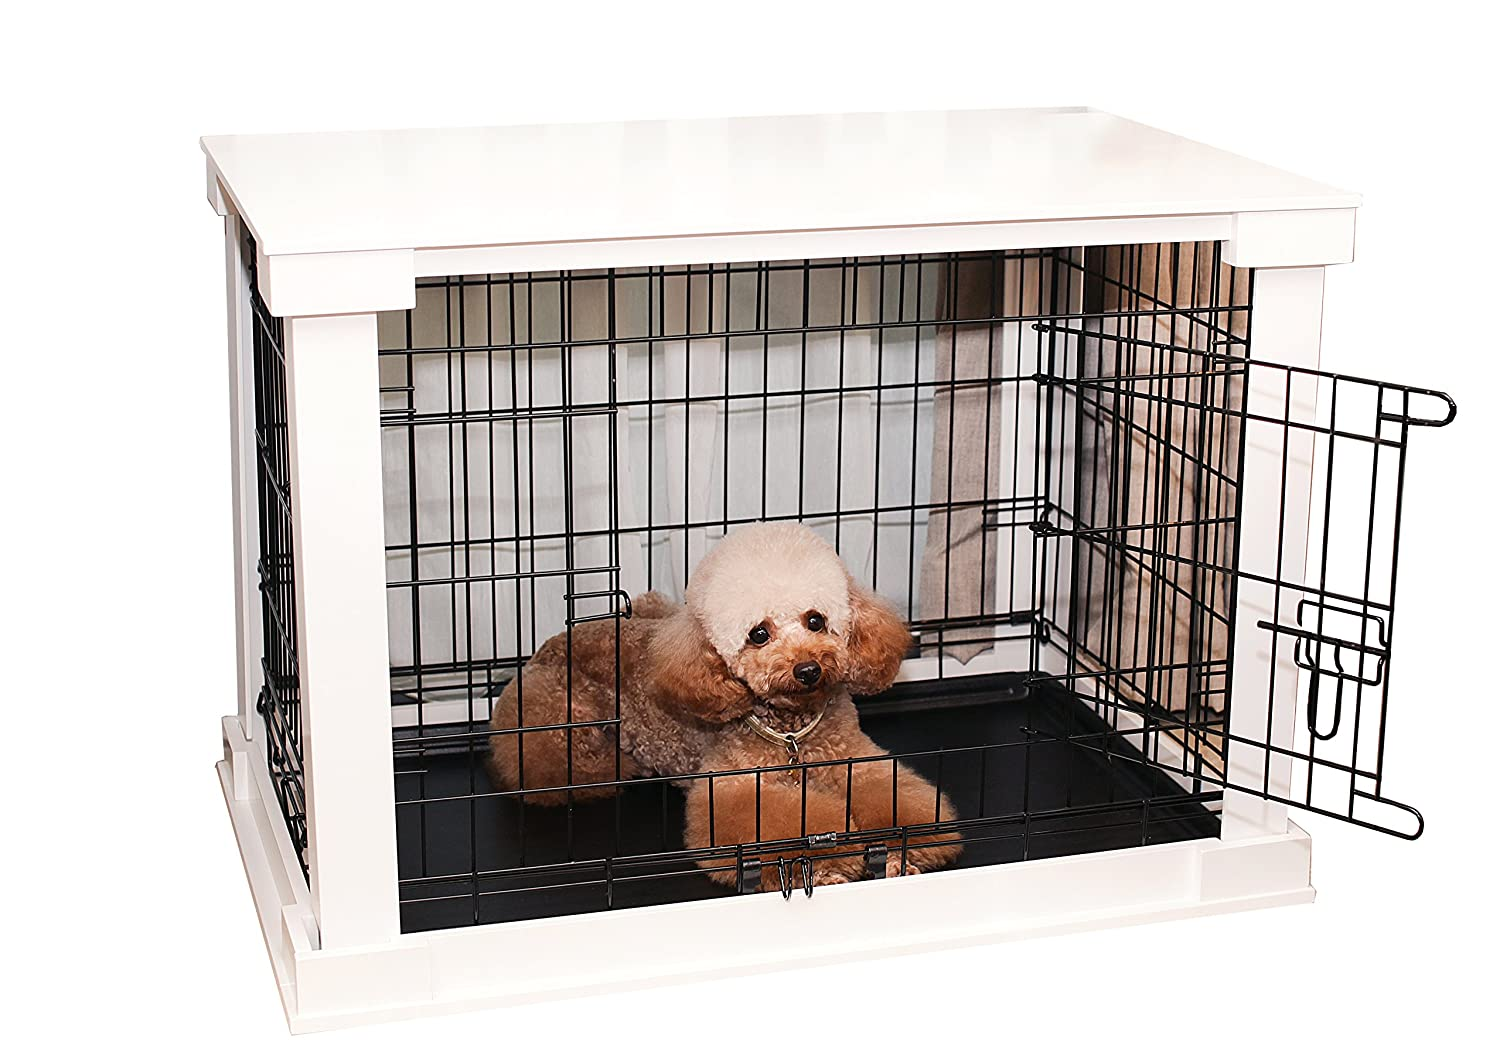 amazoncom  zoovilla large white cage with crate cover  pet supplies -